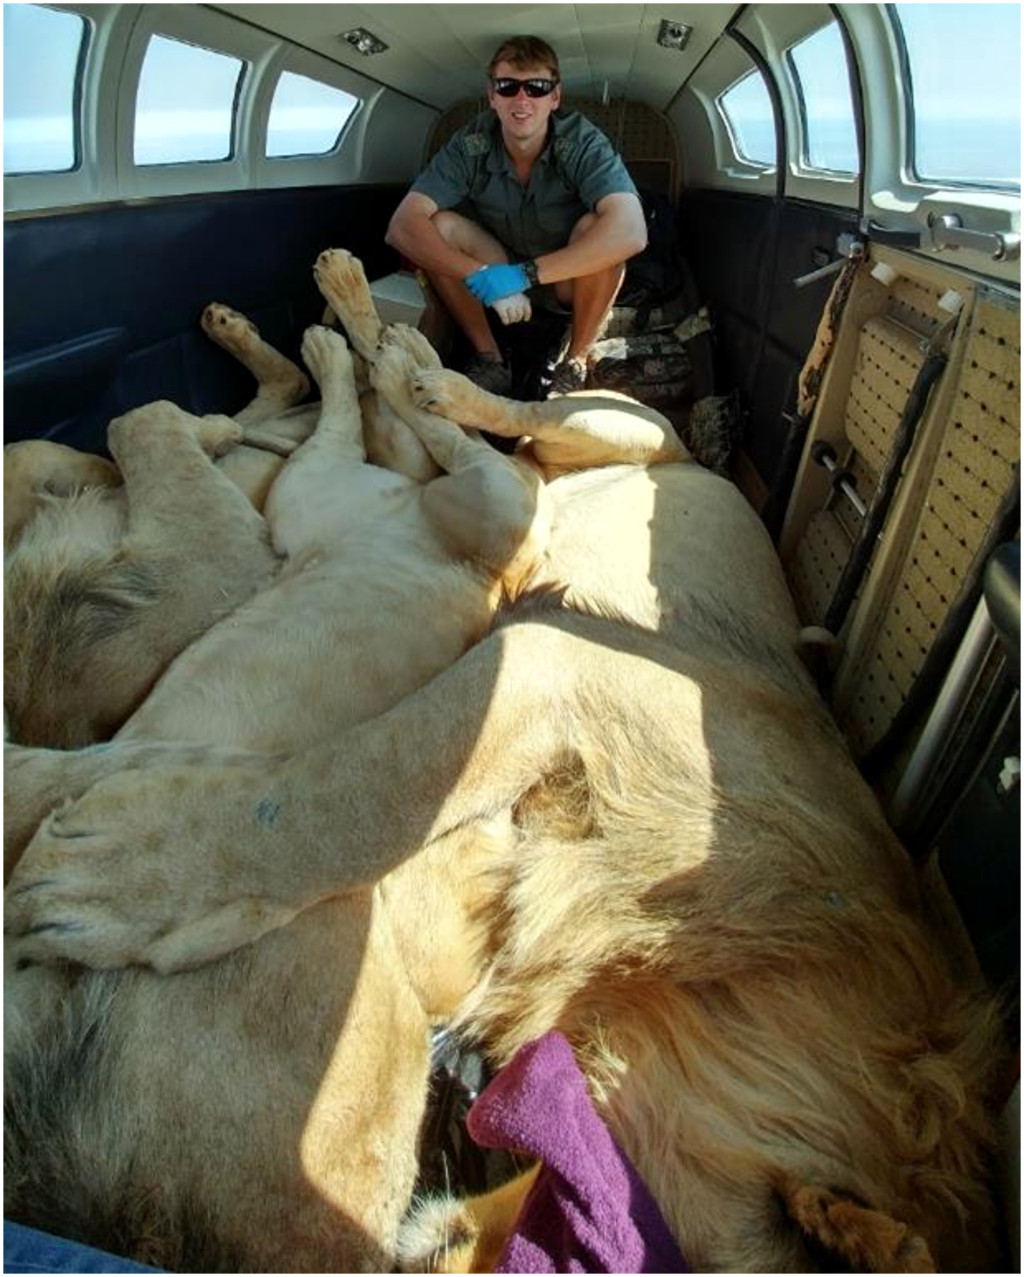 Tales of a Wildlife Vet - Episode 2: Lions on a Plane